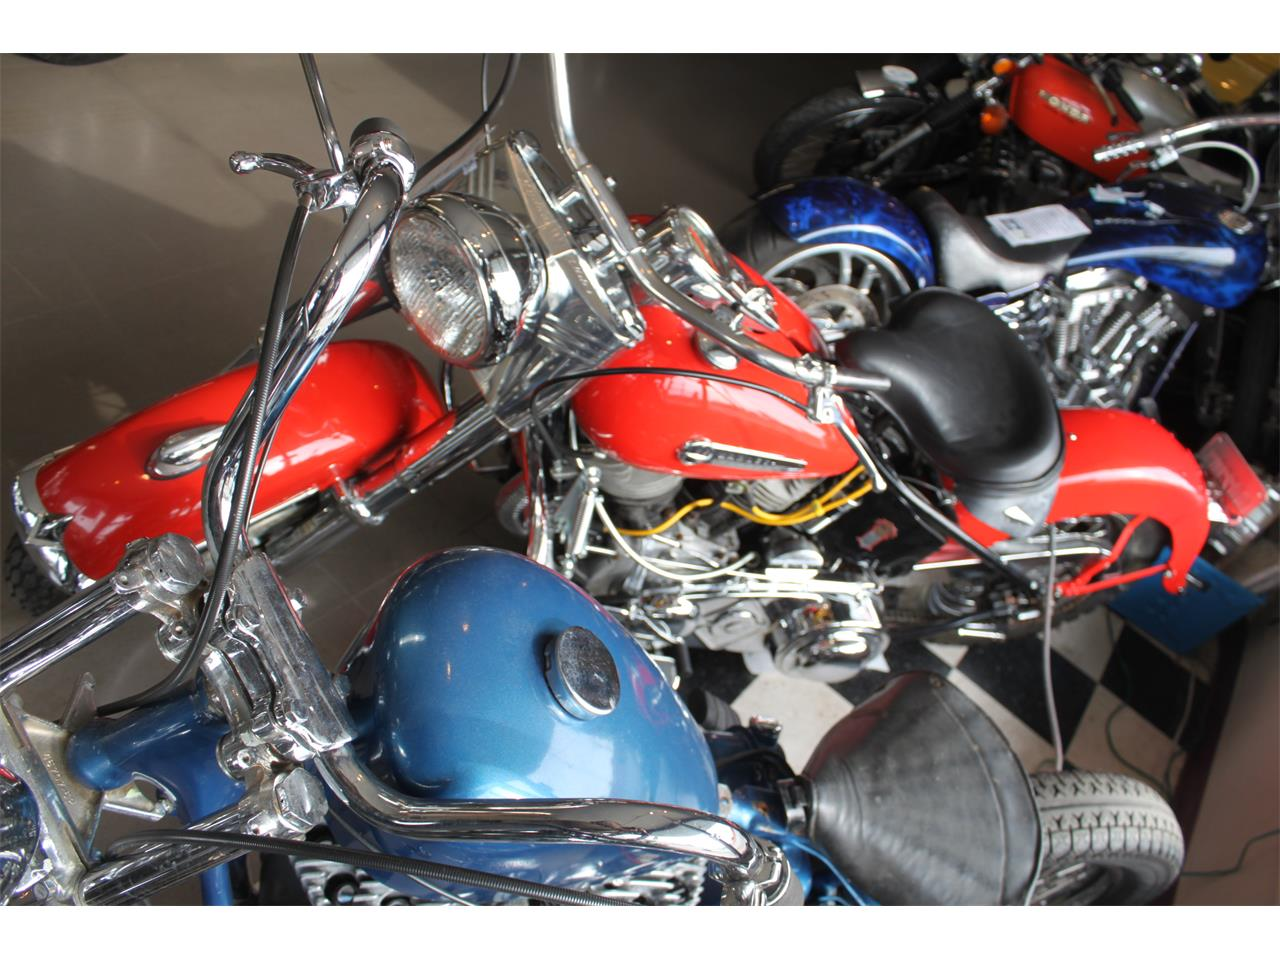 1950 Harley-Davidson Motorcycle for sale in Carnation, WA – photo 21